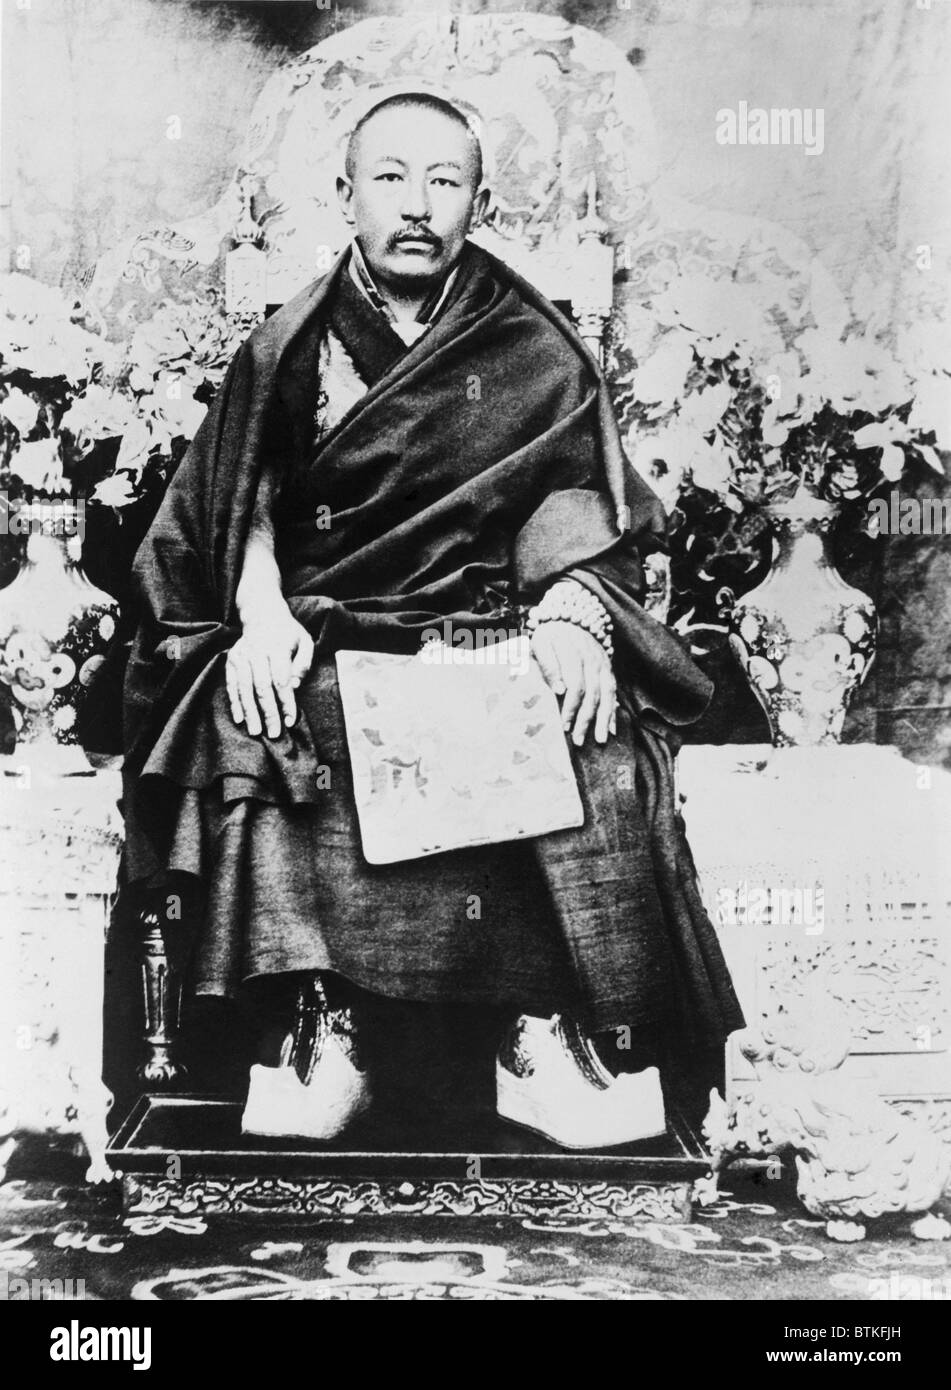 Panchen Lama (Chos-kyi Nyi-ma) (1883-1937) in ca. 1930. Among Tibetan Buddhists, he is second only to the Dalai - Stock Image